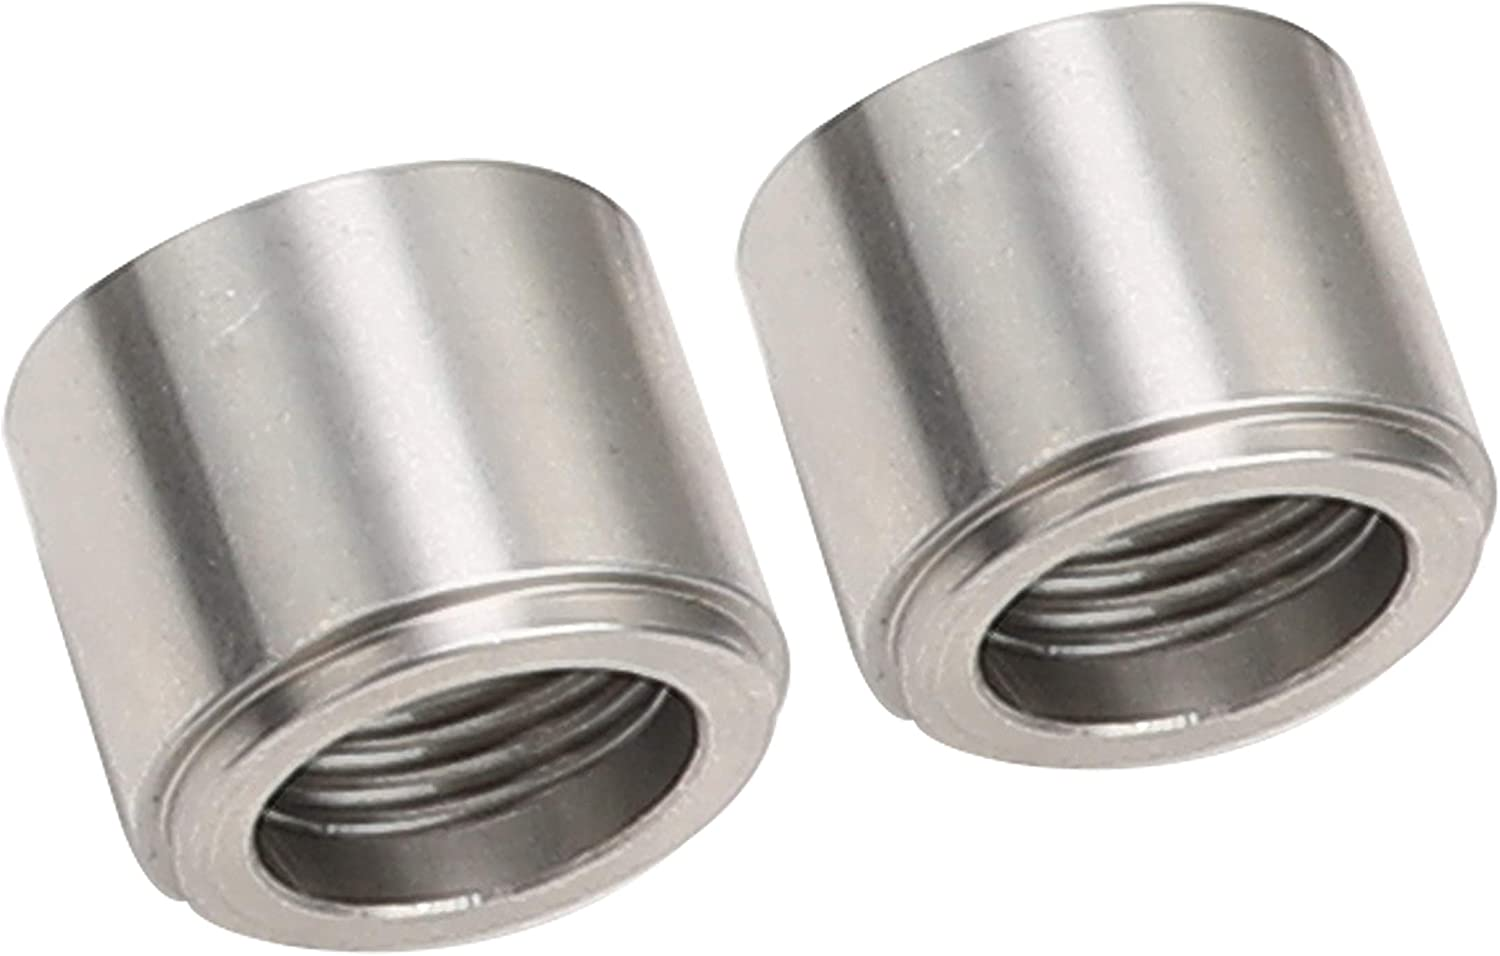 Pack of 2 10AN Steel Male Weld On Bung AN10 JIC-10 AN Thread Weldable Fuel Tank Fitting 7//8-14 Natural